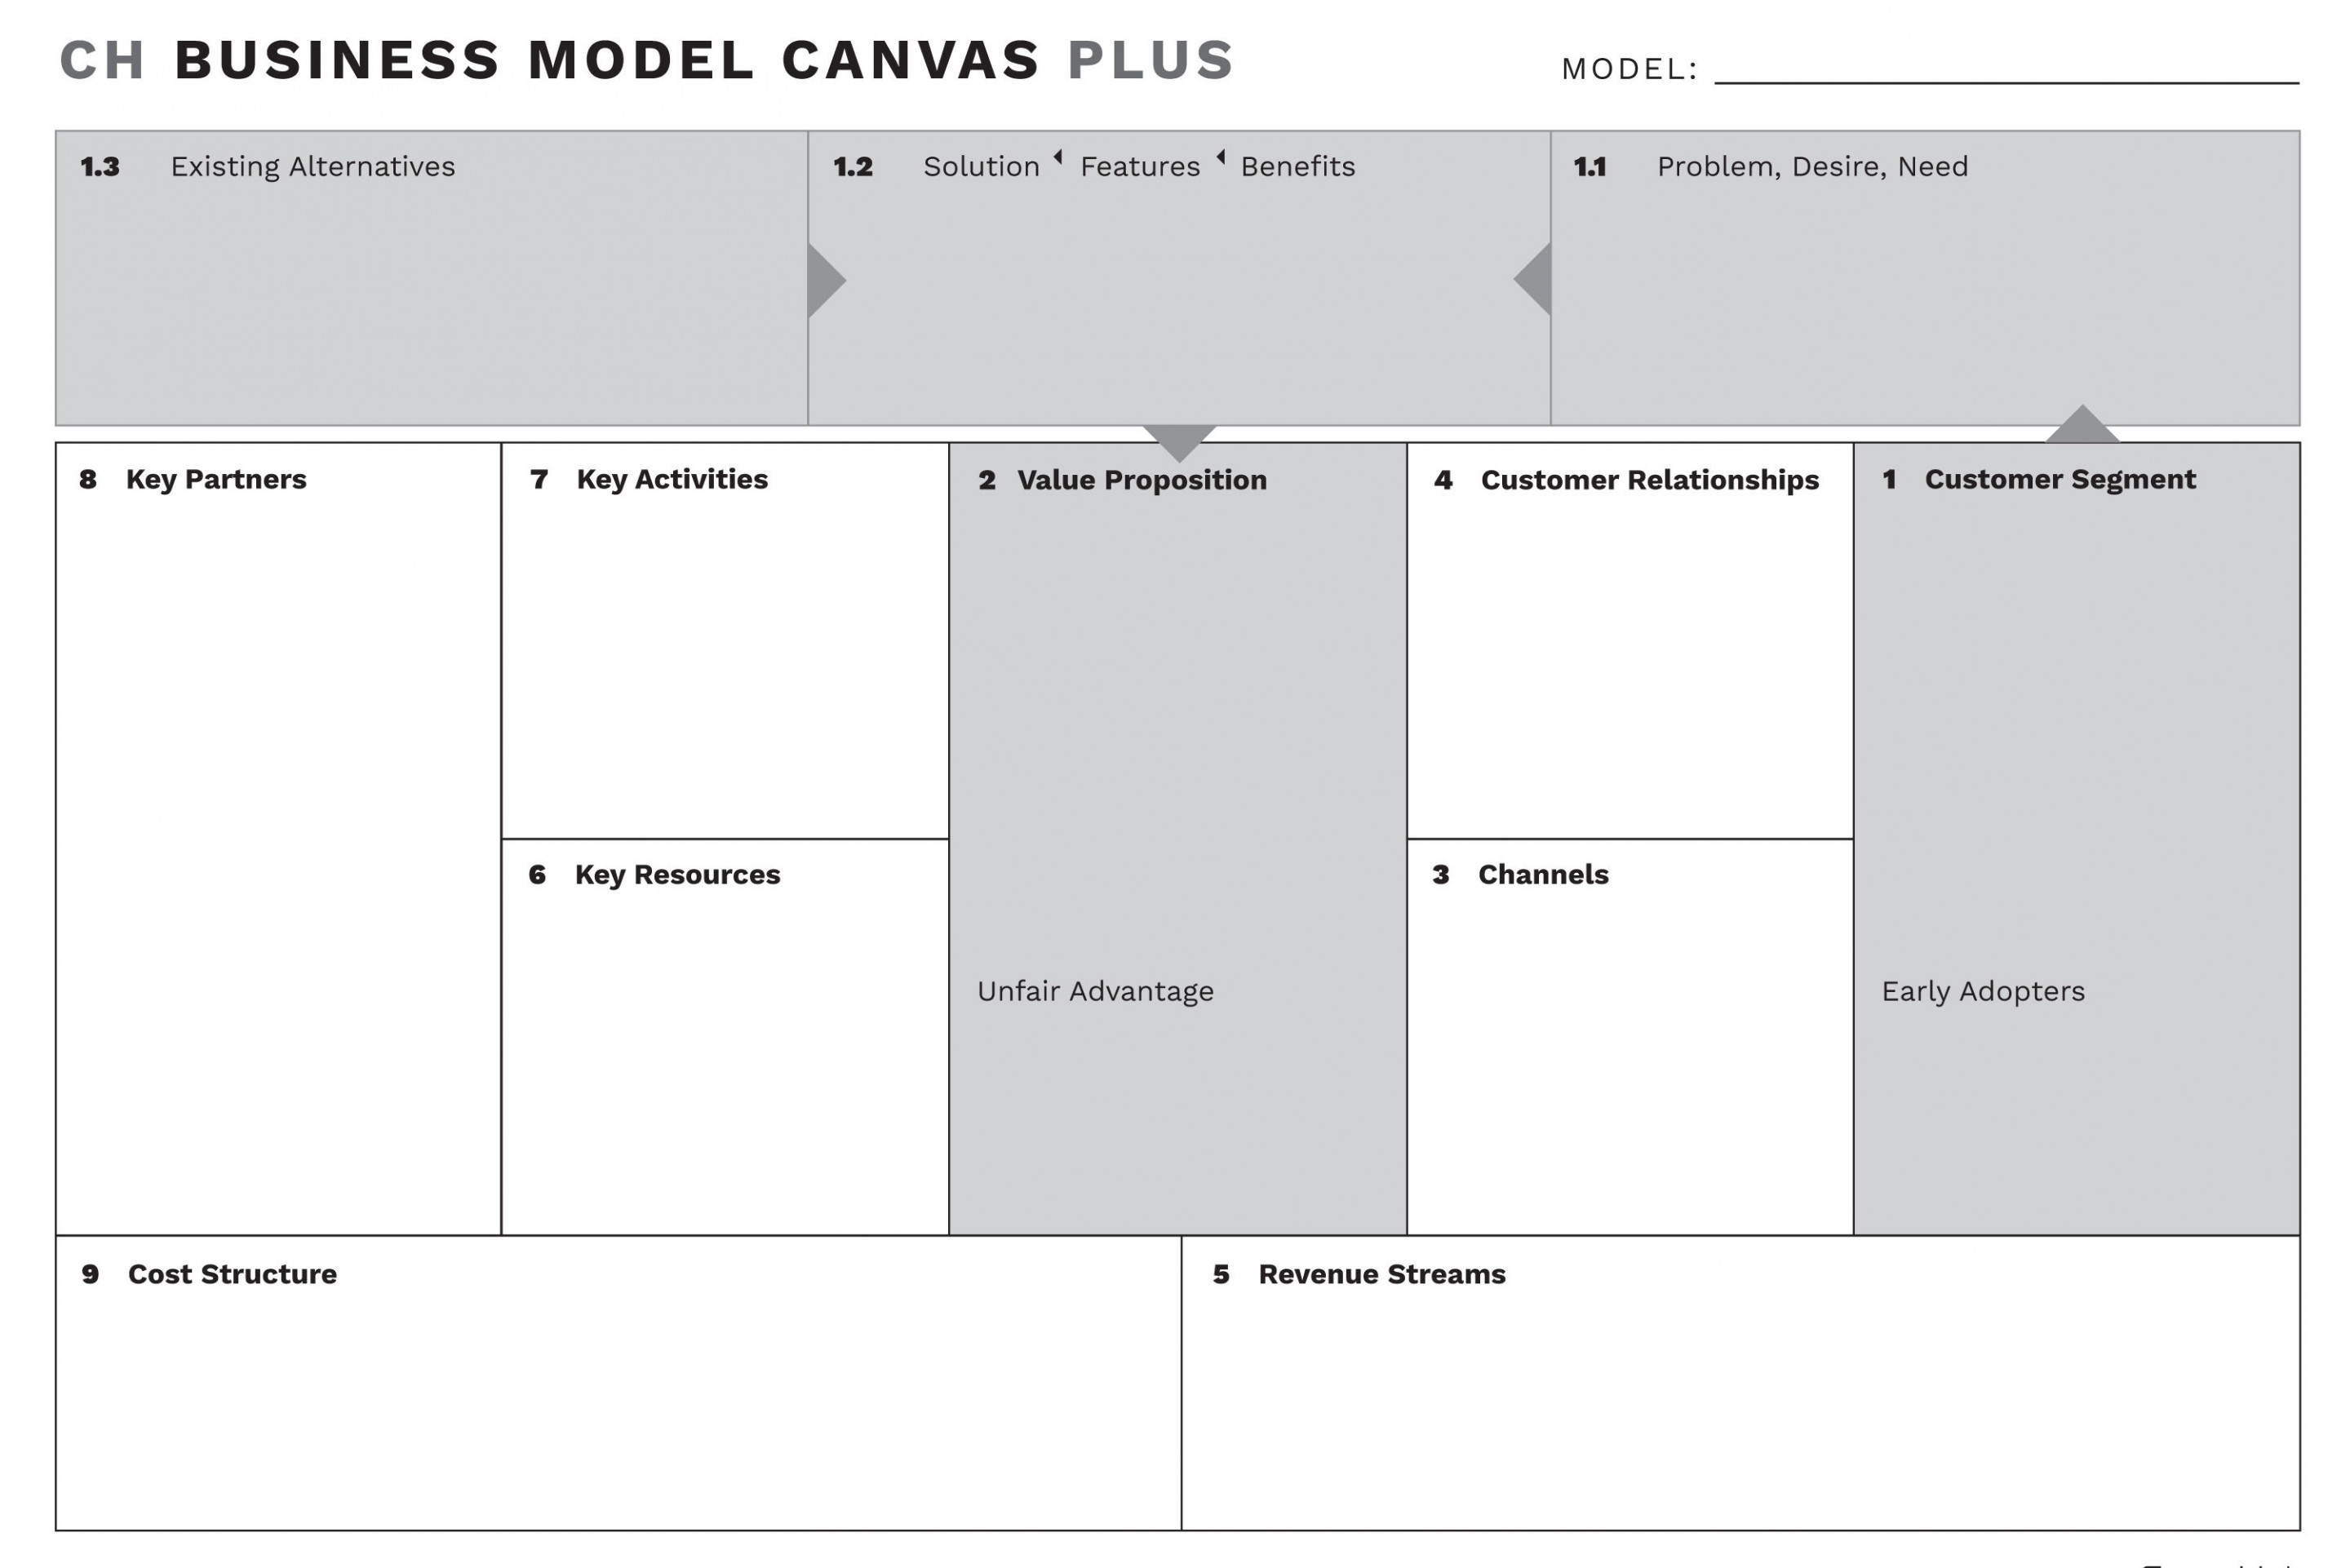 Ch business model canvas plus corpohub business model canvas is a strategic management and lean startup template for developing new or documenting existing business models flashek Images